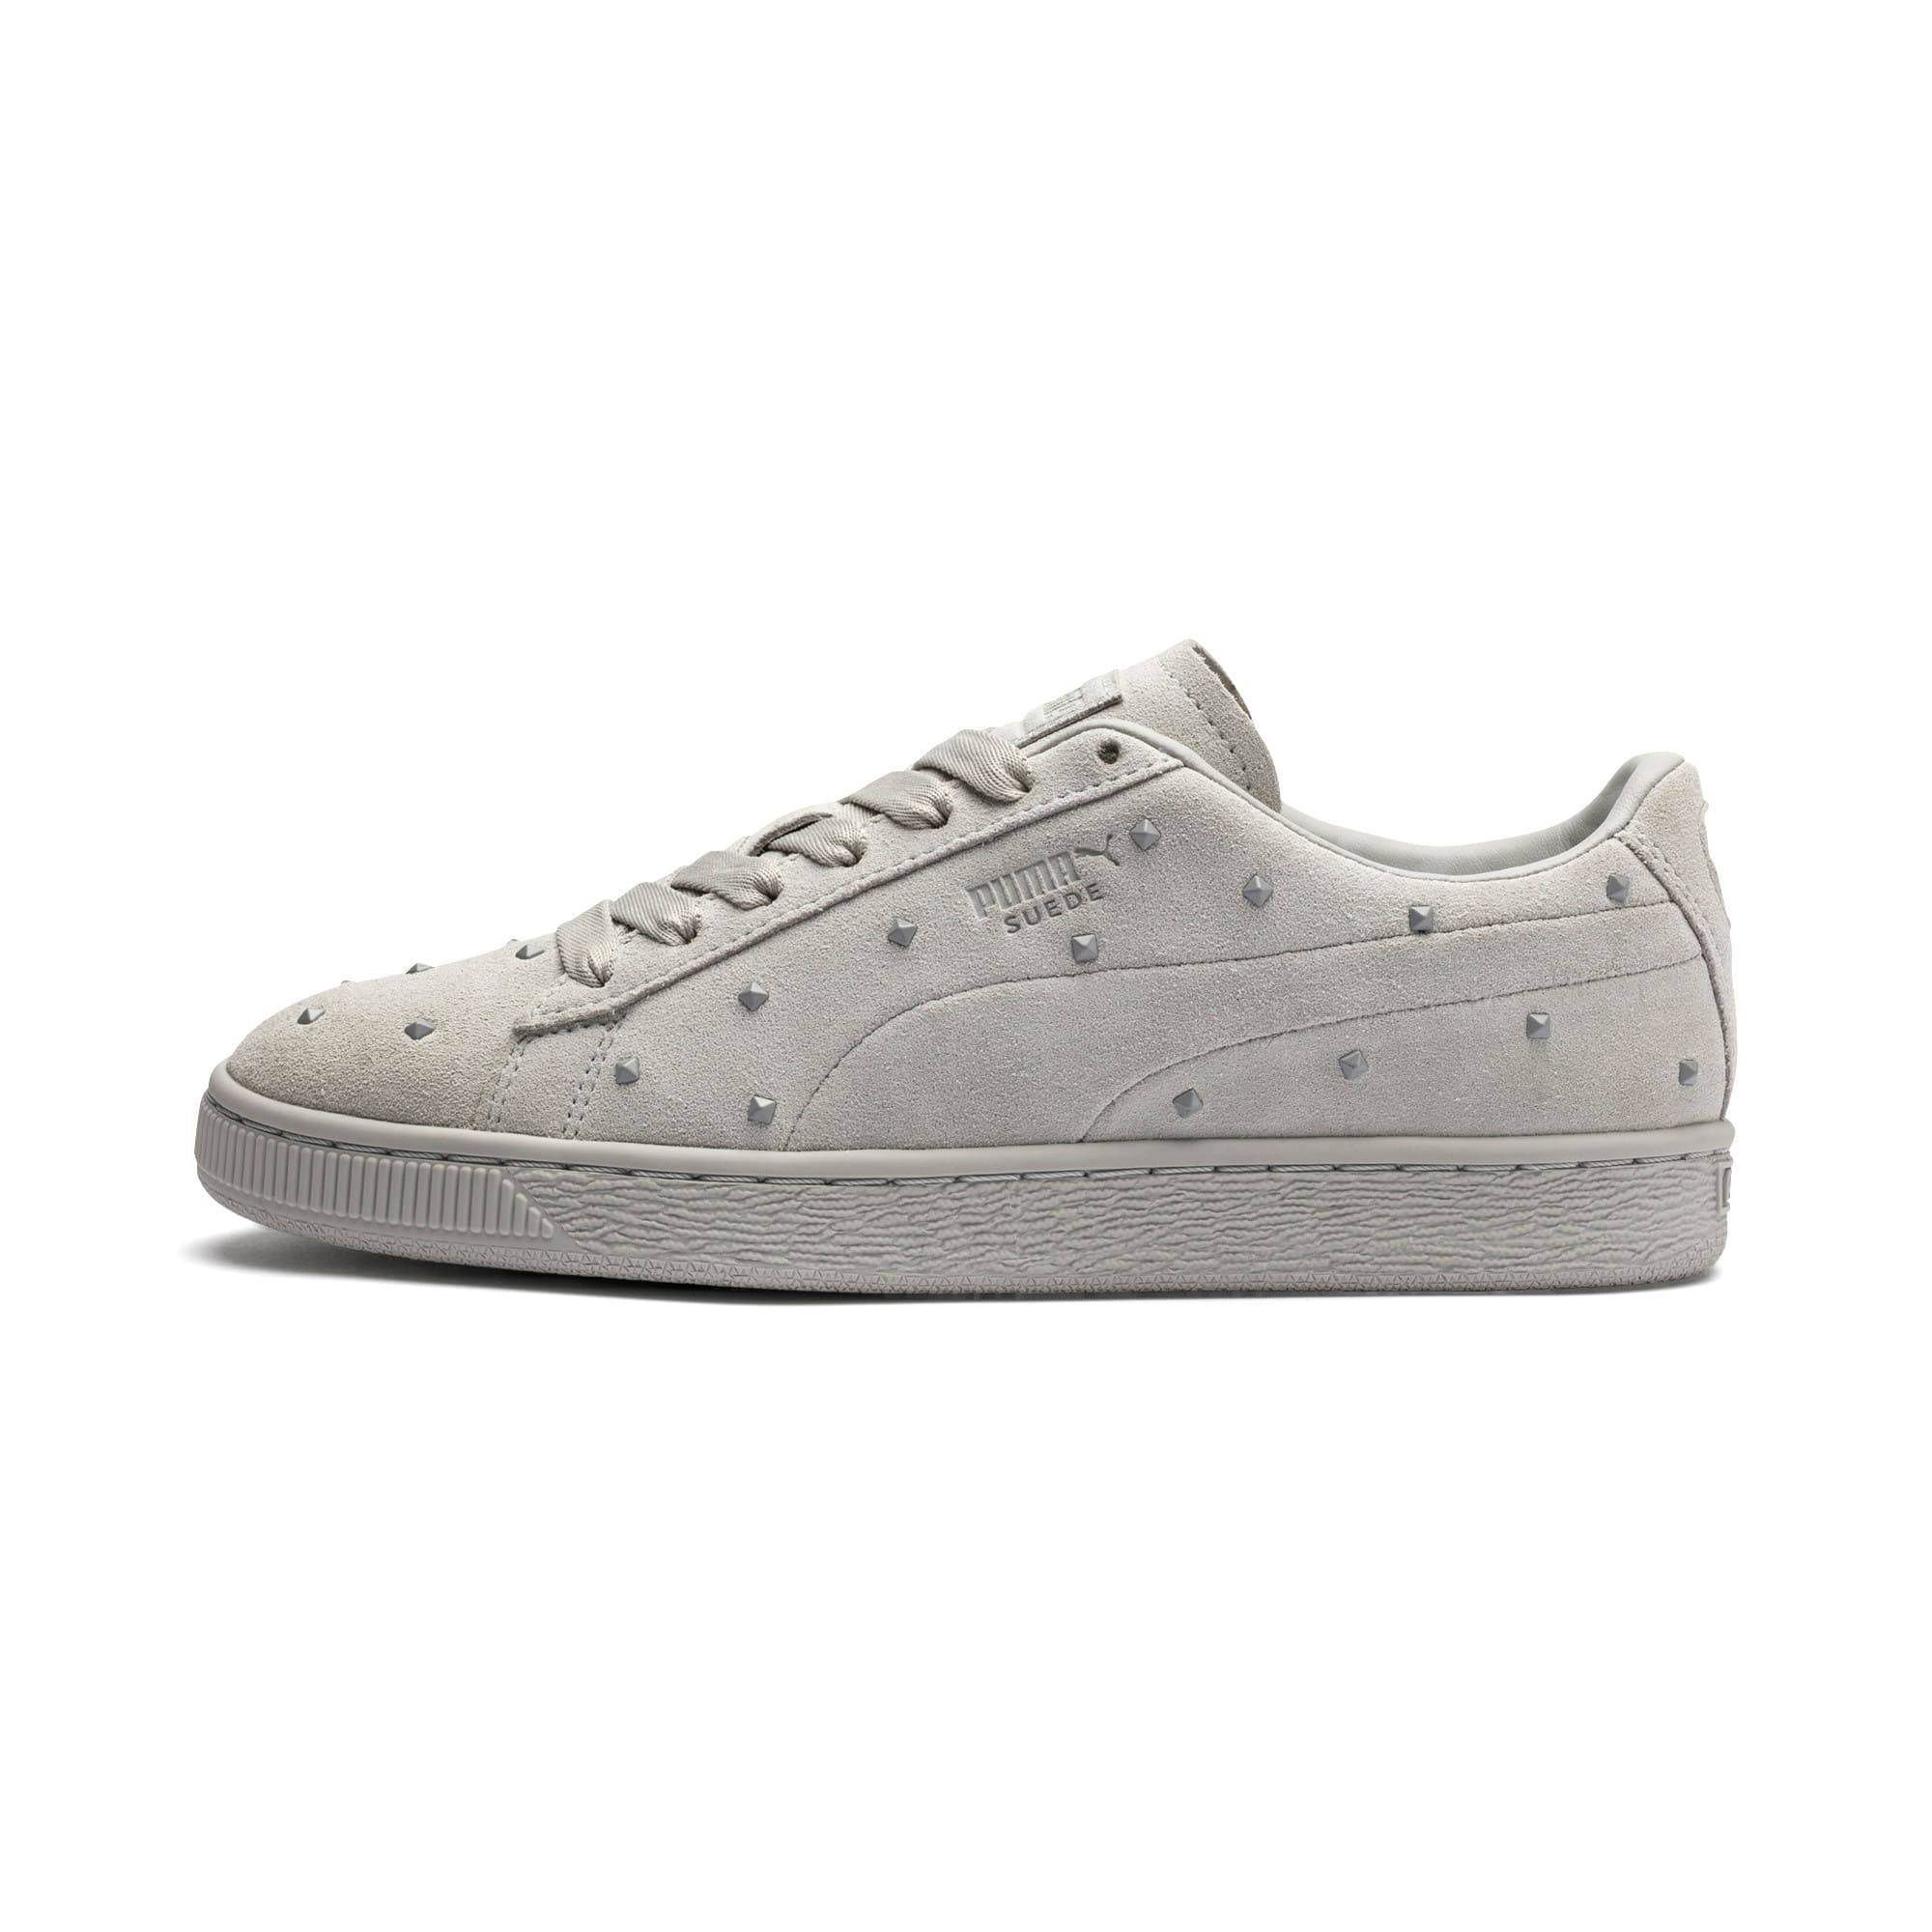 Thumbnail 1 of Suede Studs Women's Trainers, Gray Violet-Puma White, medium